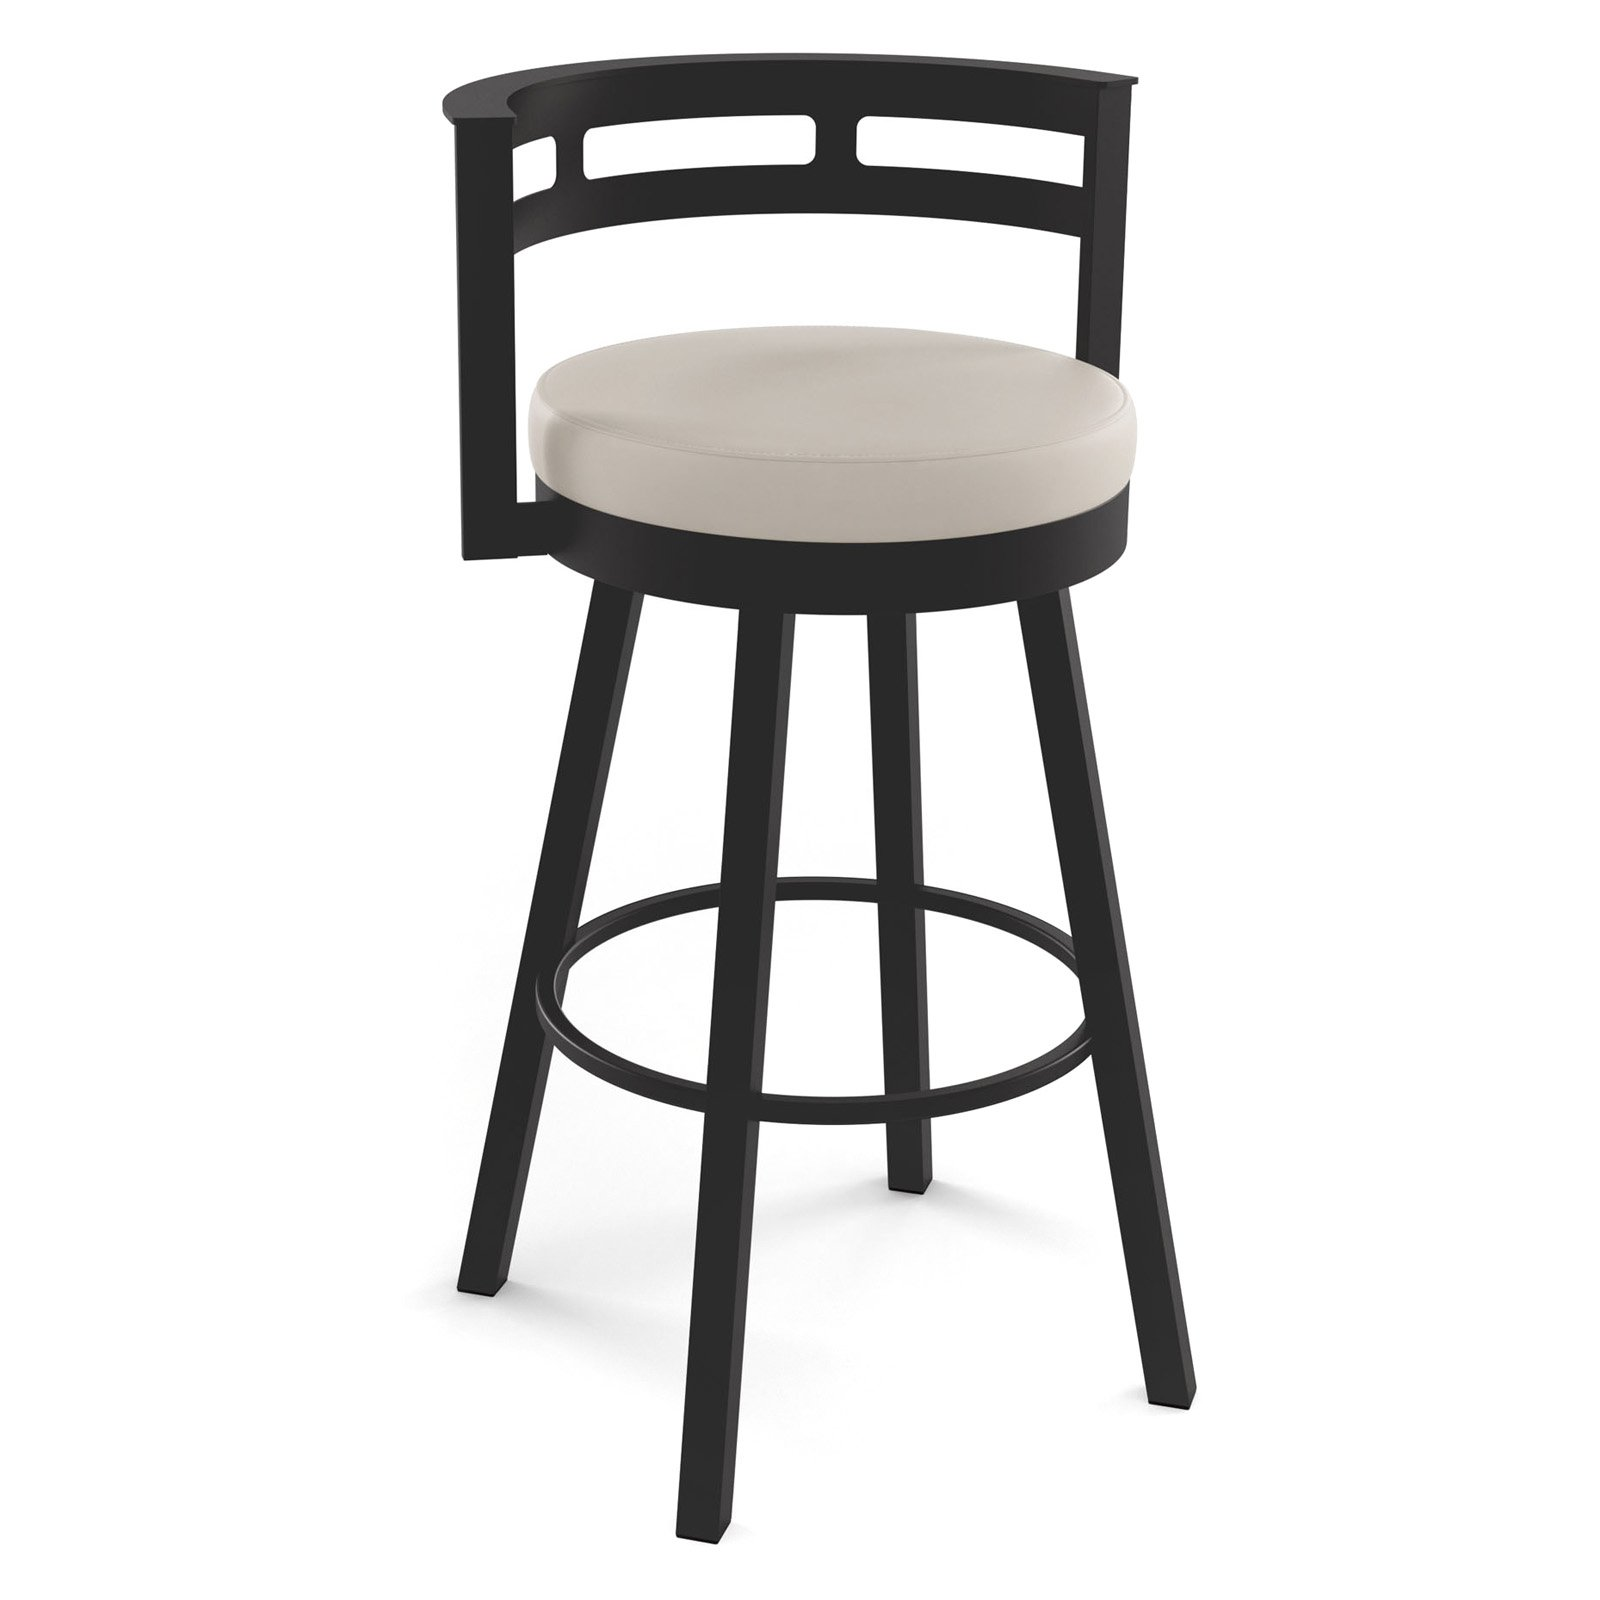 Amisco Render 27 in. Swivel Counter Stool